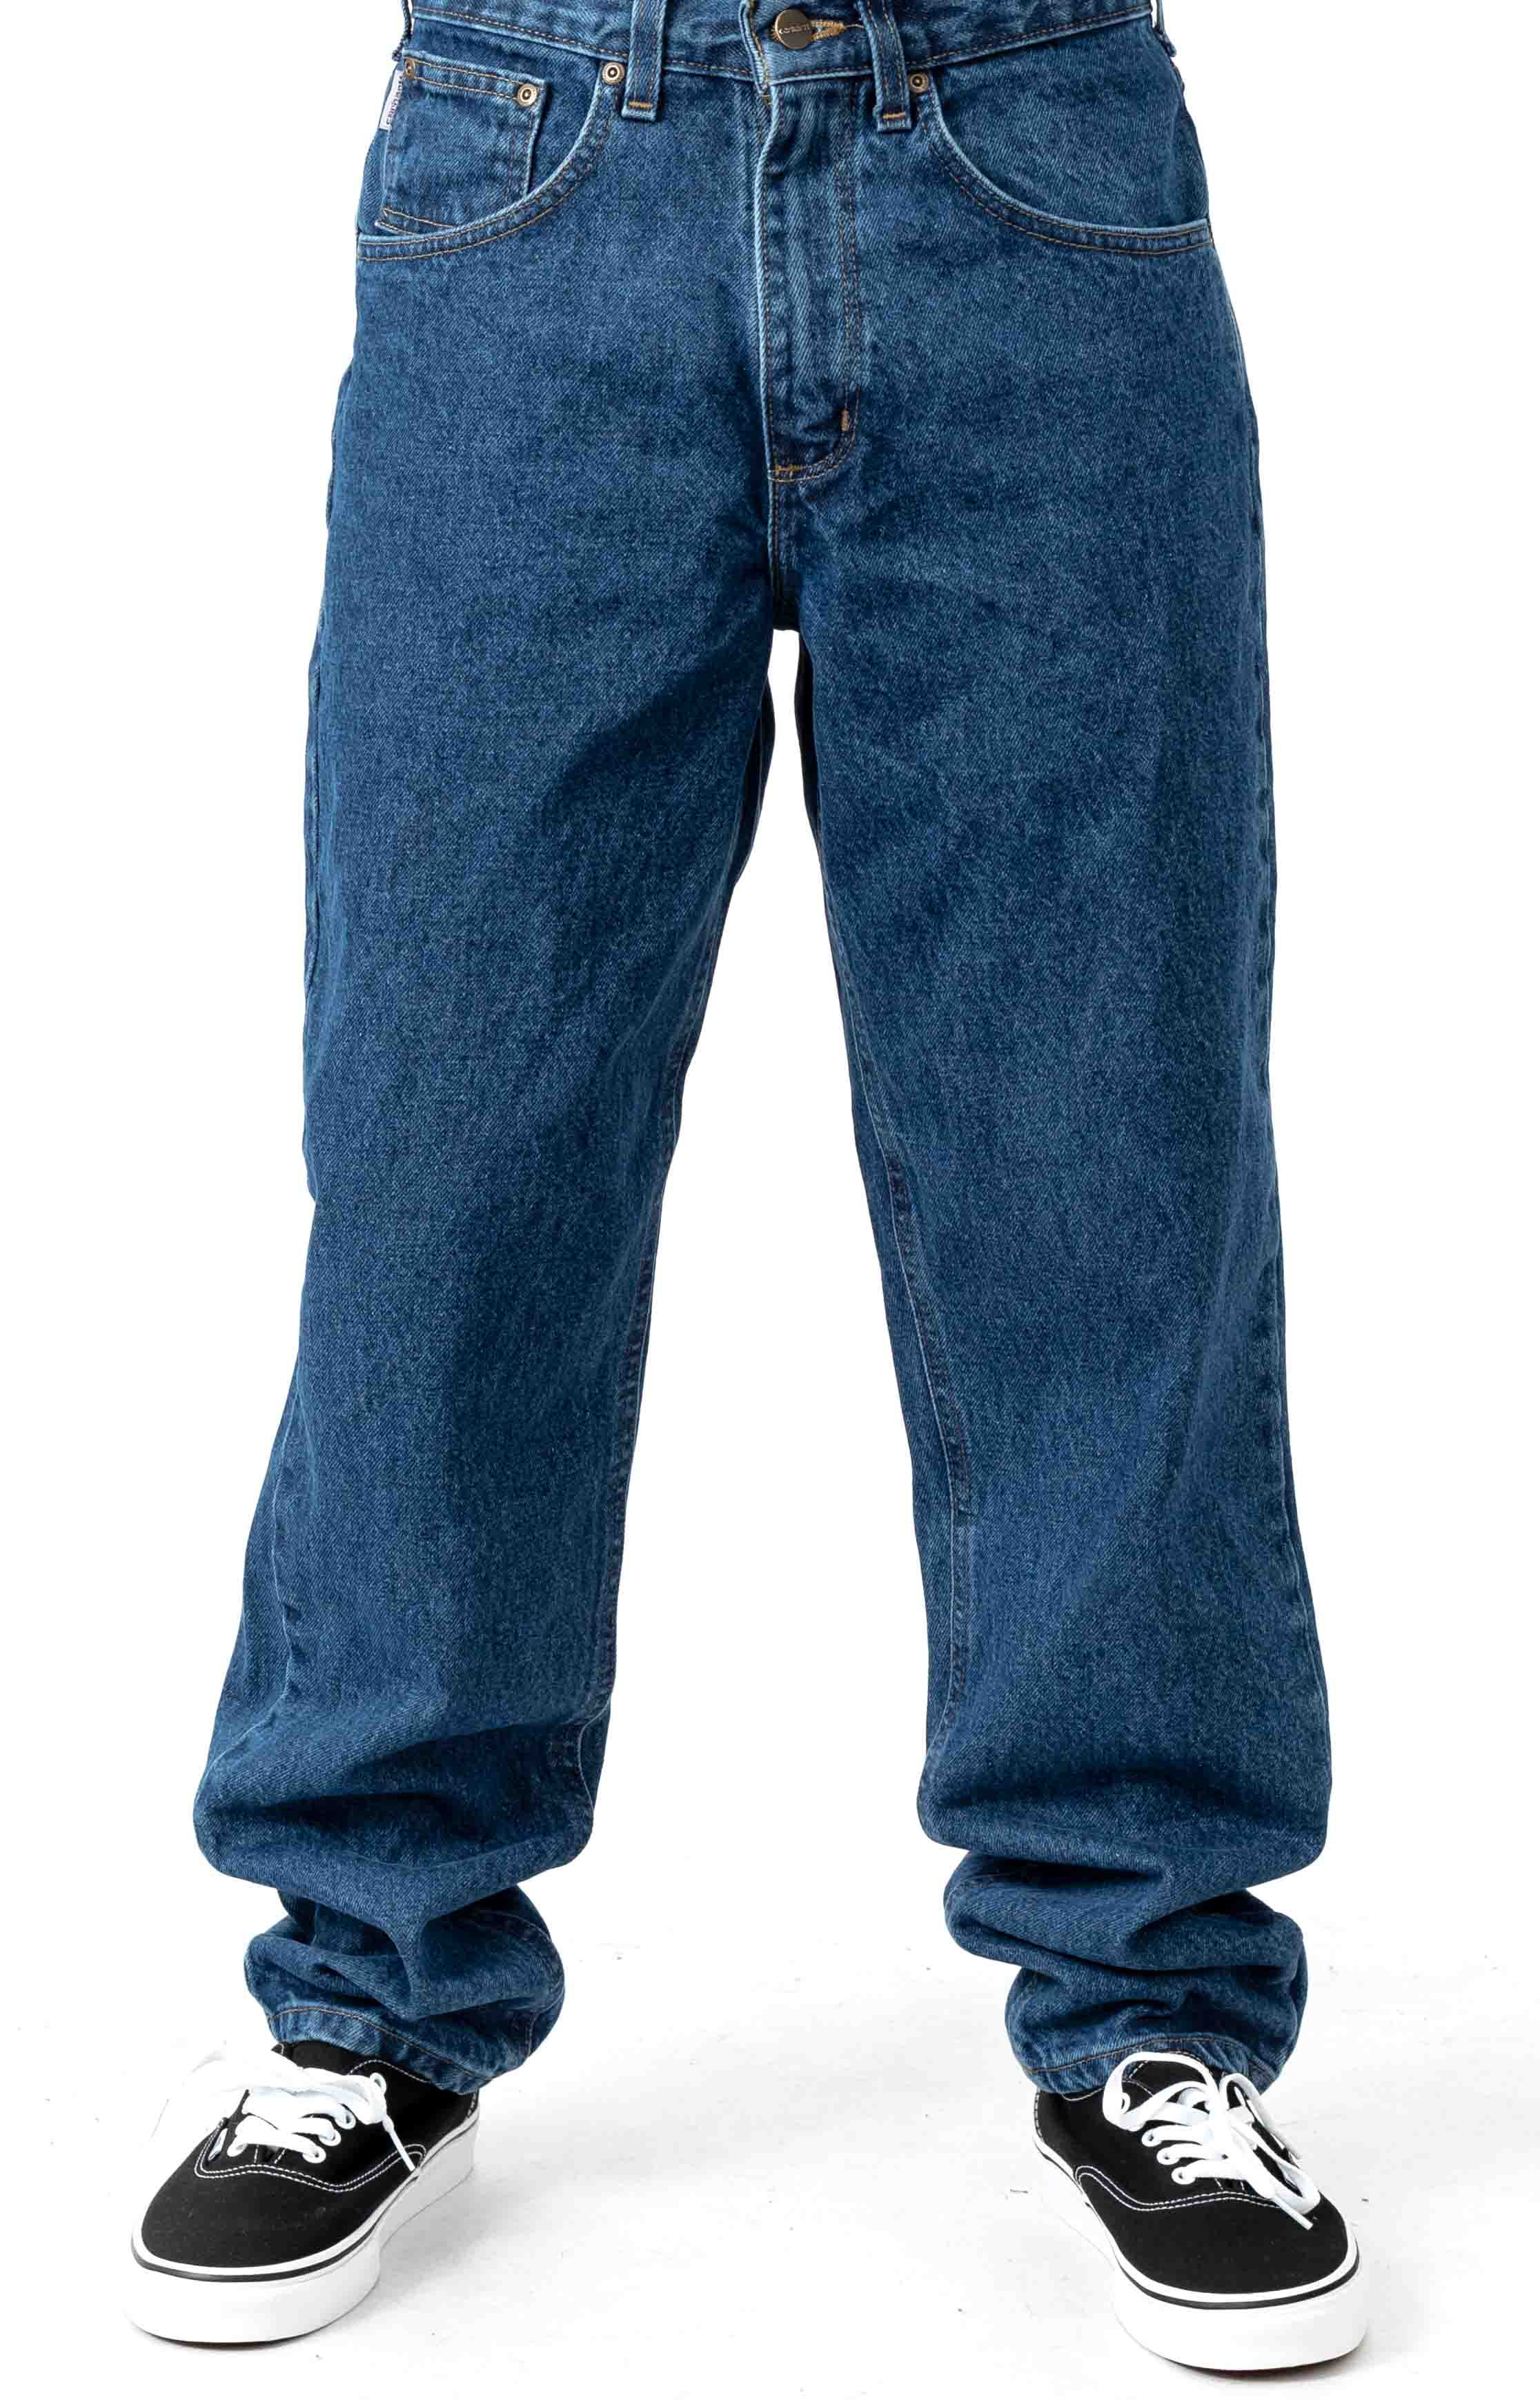 (B17) Relaxed Fit Tapered Leg Jeans - Darkstone